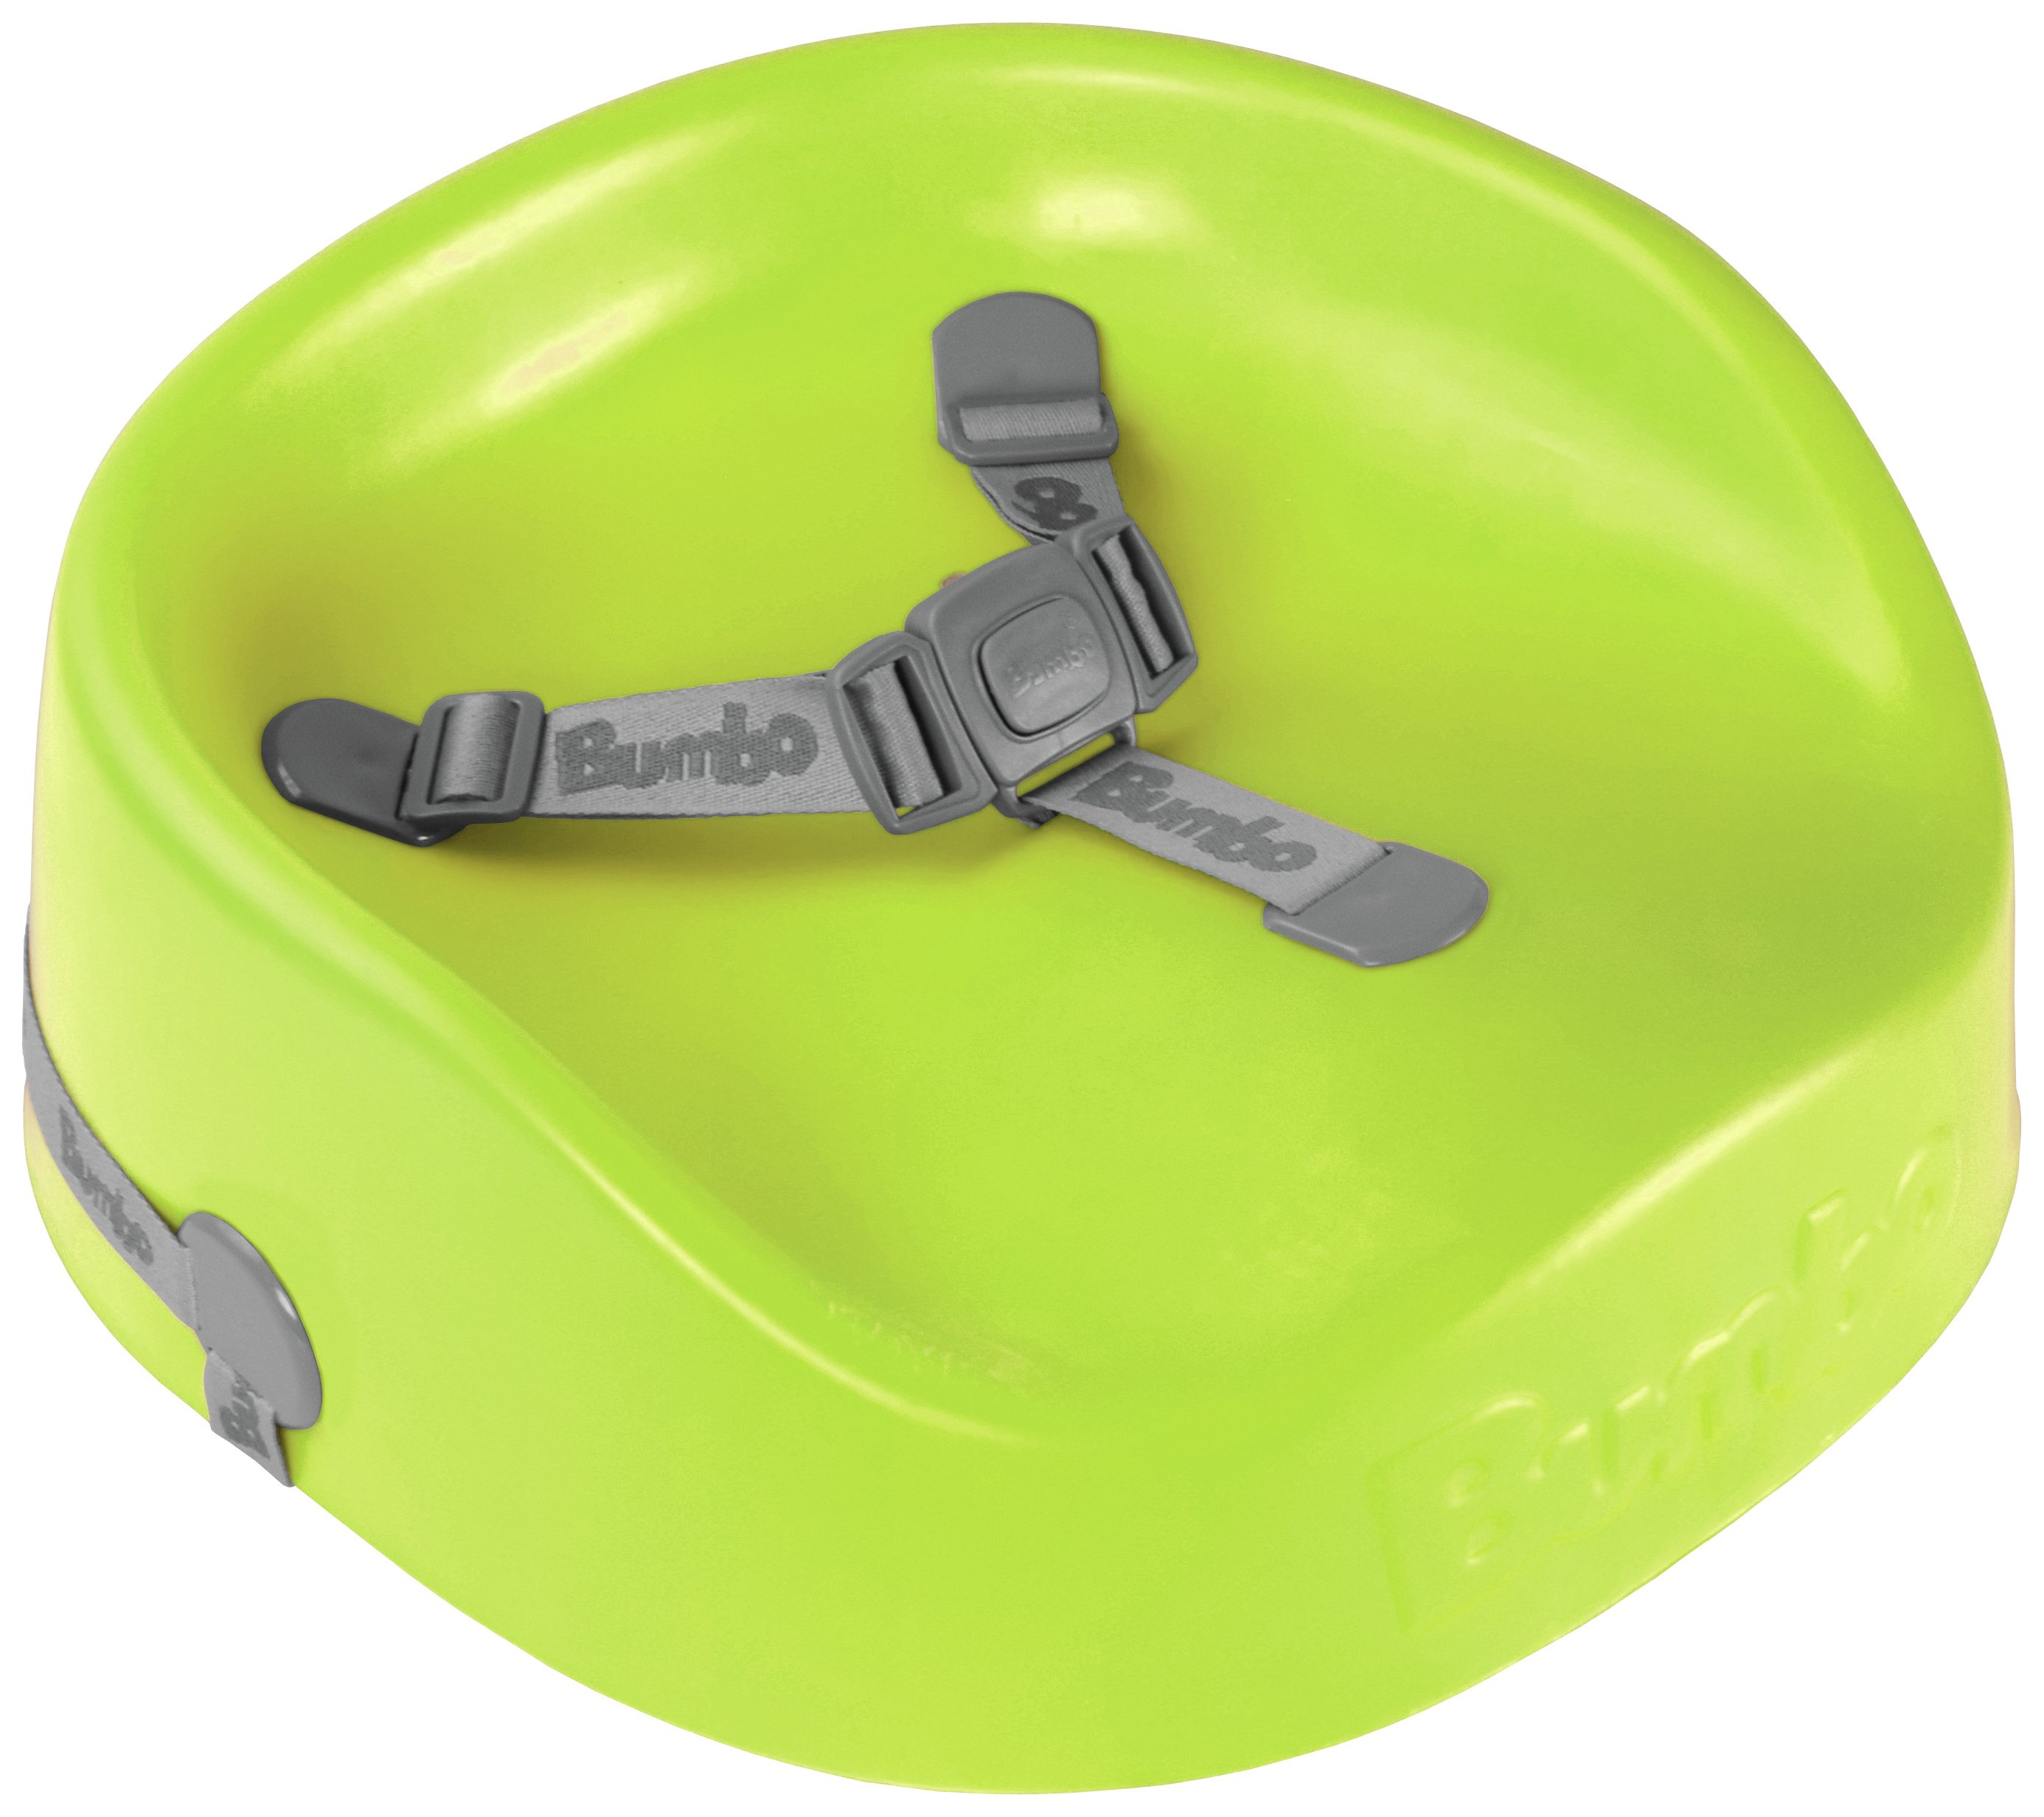 Image of Bumbo Booster Seat - Lime.